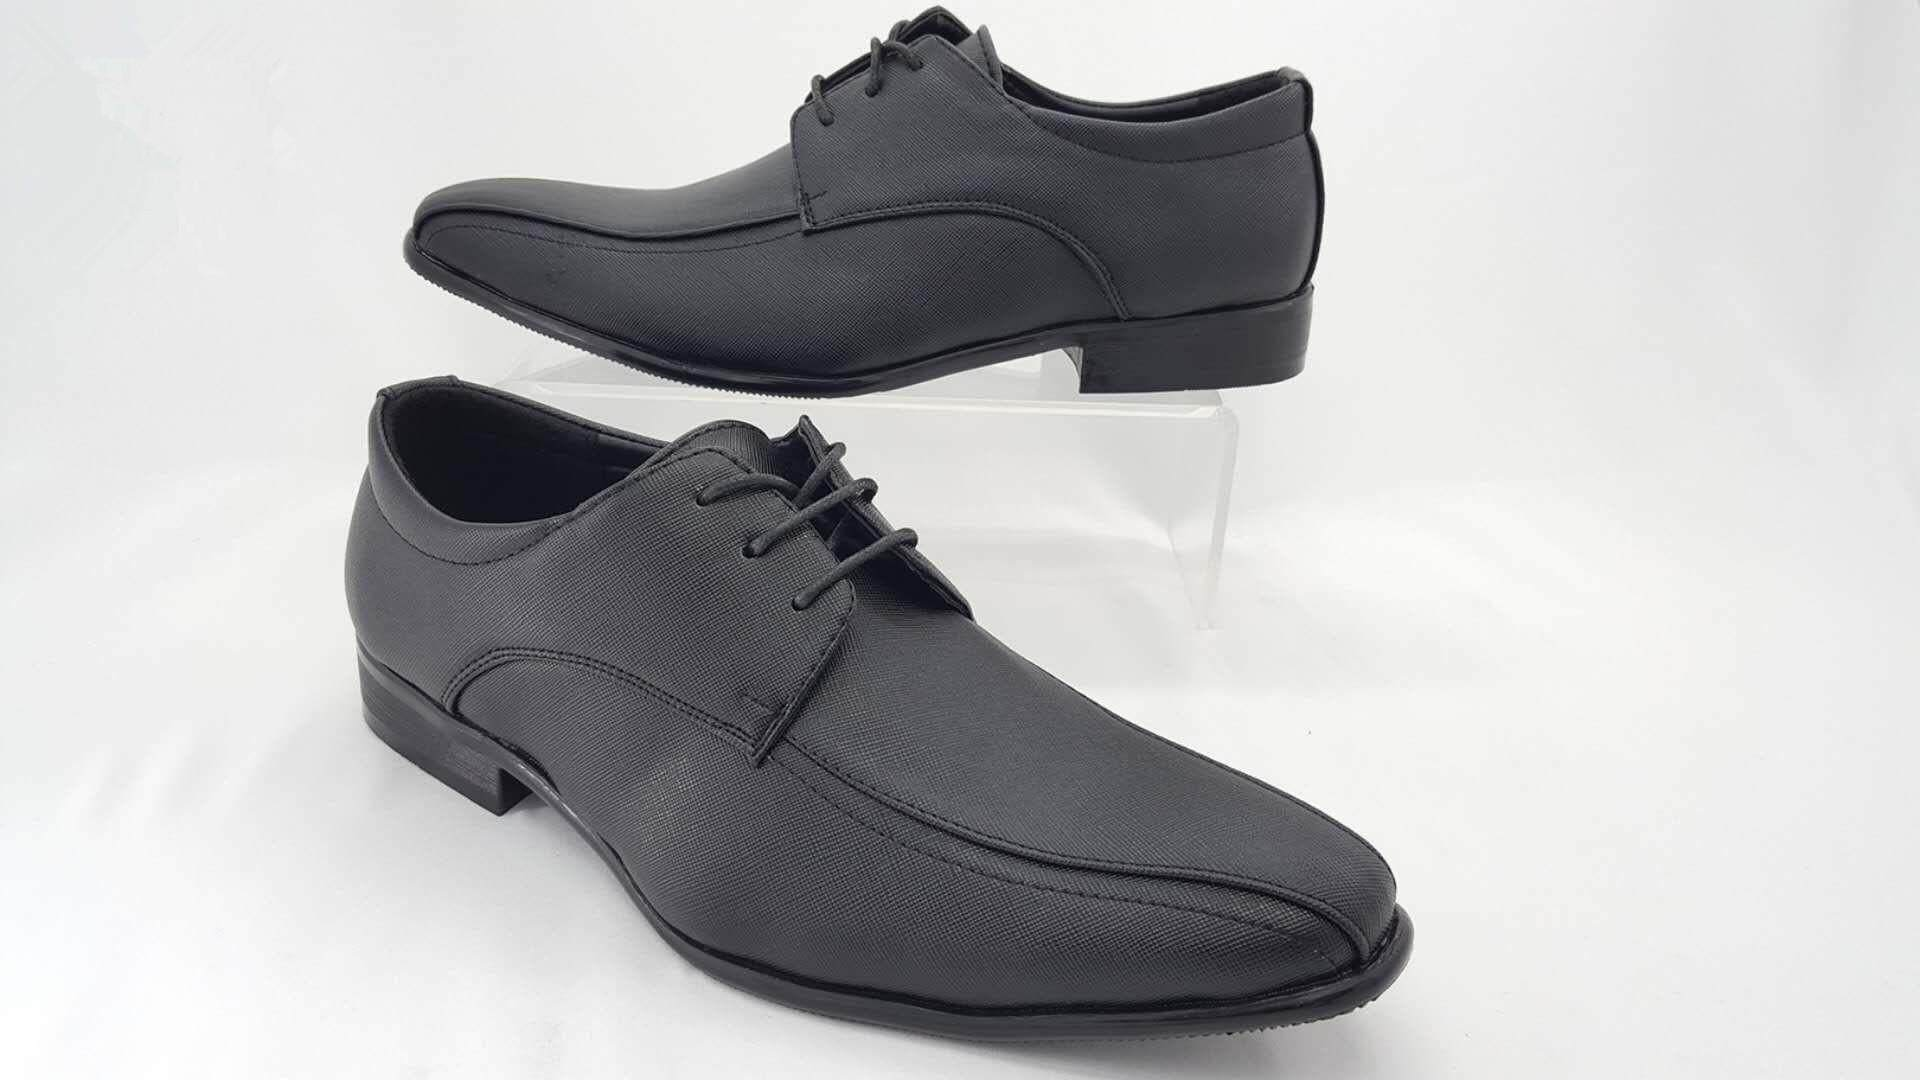 Chelseapolo Formal Shoes FU13